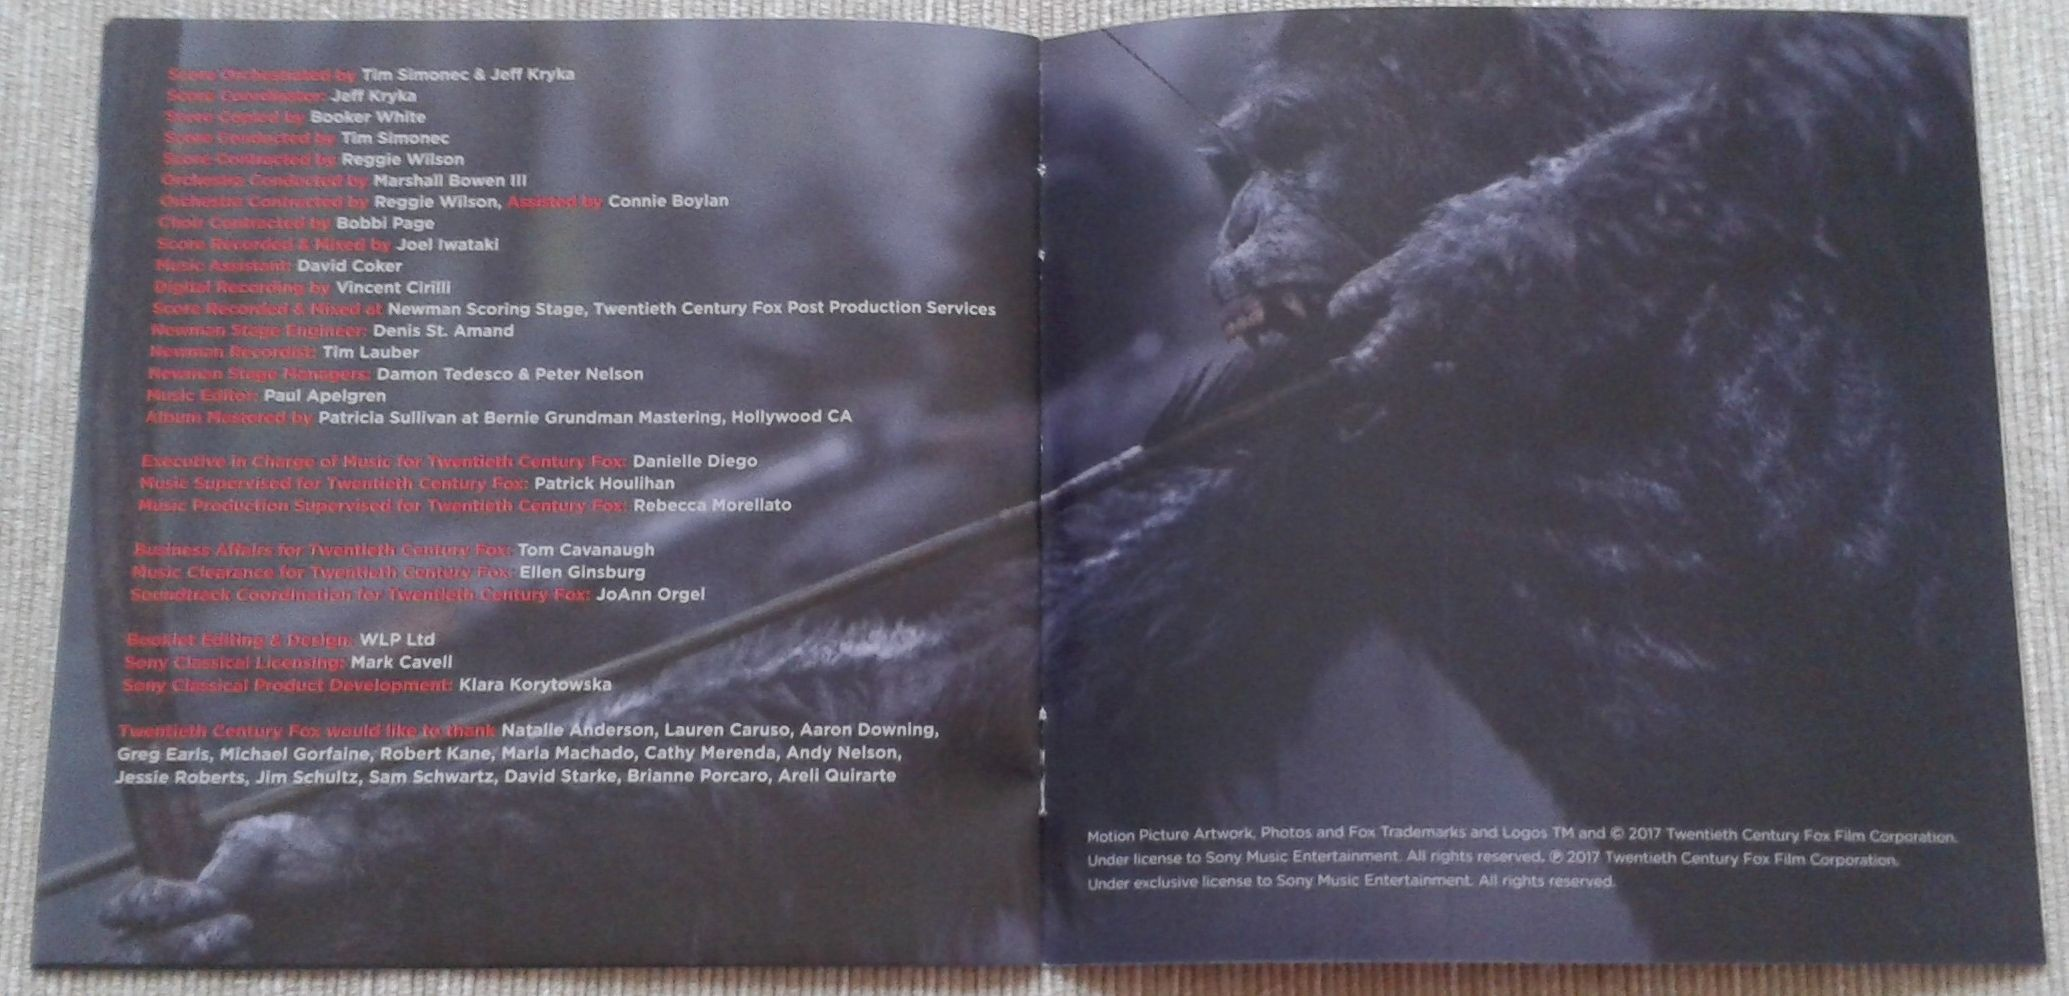 10. War for the Planet of the Apes booklet 6.jpg